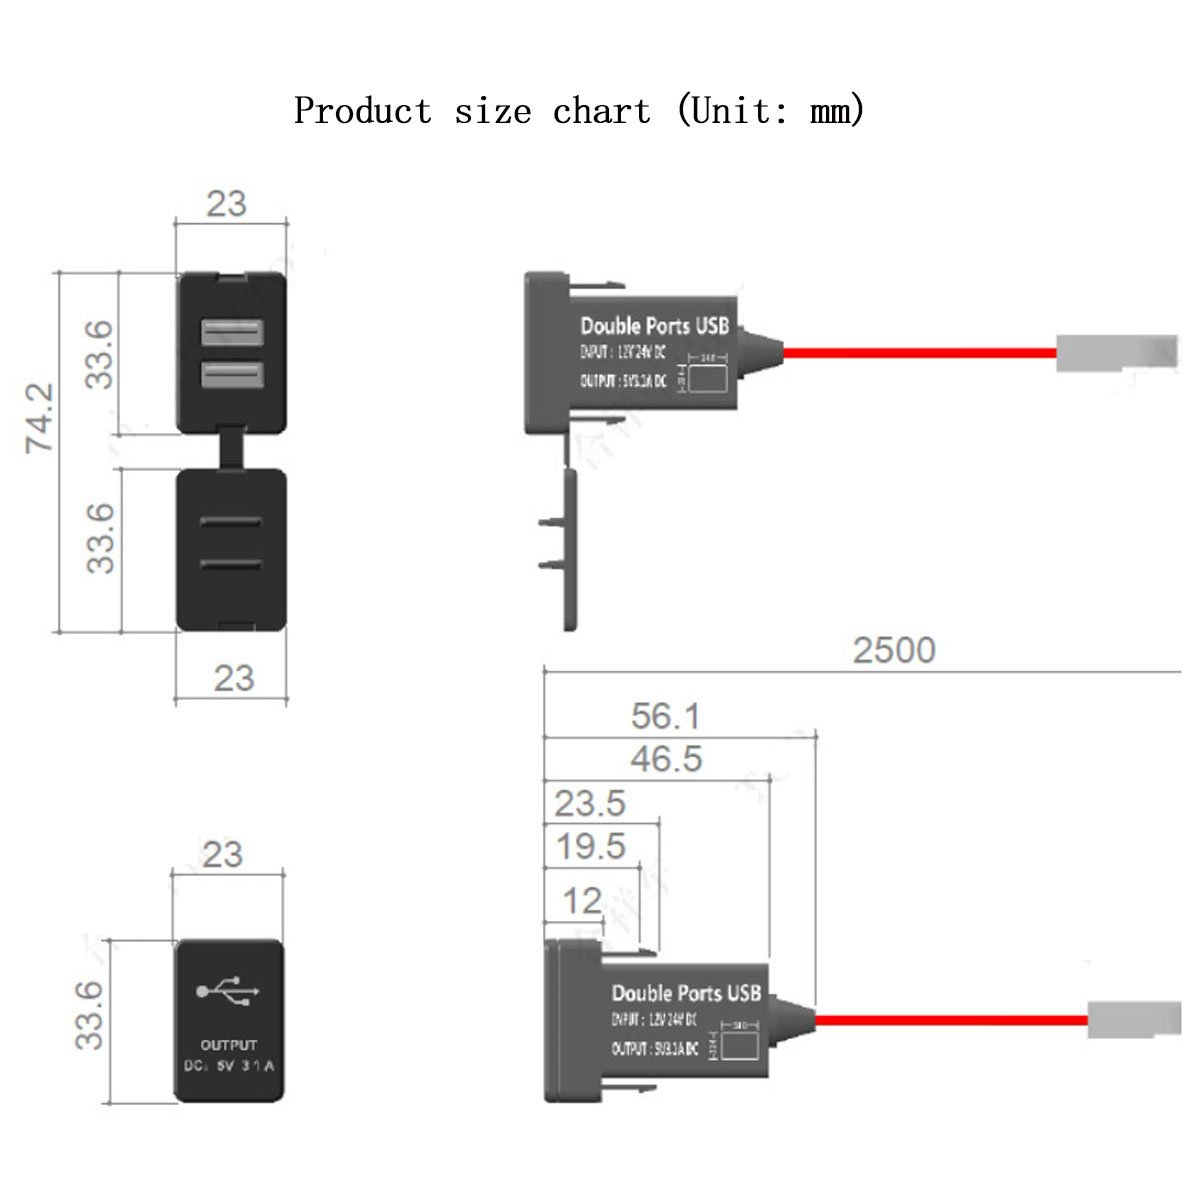 13 Pin Wiring Diagram Uk further File Rj11 4 6 to icsp in addition Fuse Box Diagrams For 2010 Nissan Maxima further Wiring Diagram Of Direct Online further Hdmi To Vga Adapter Schematic. on usb camera diagram